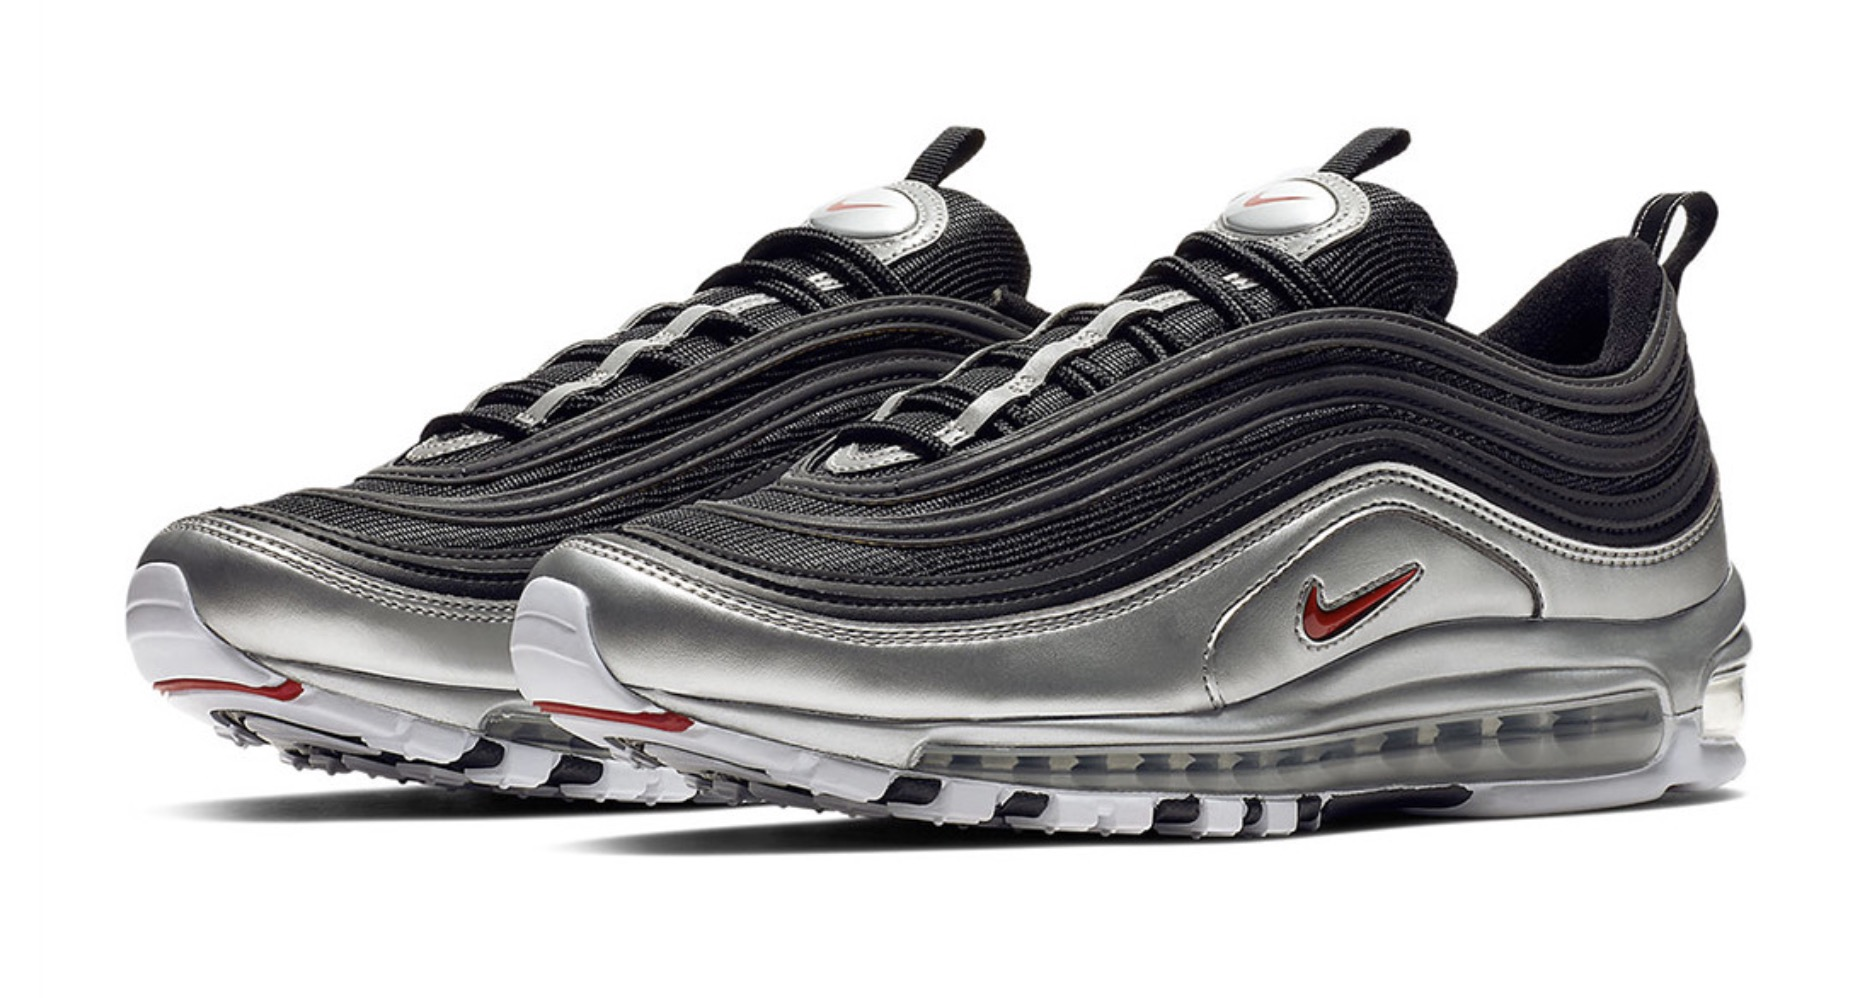 Nike's Air Max 97 Is The Latest Silhouette To Turn Metallic